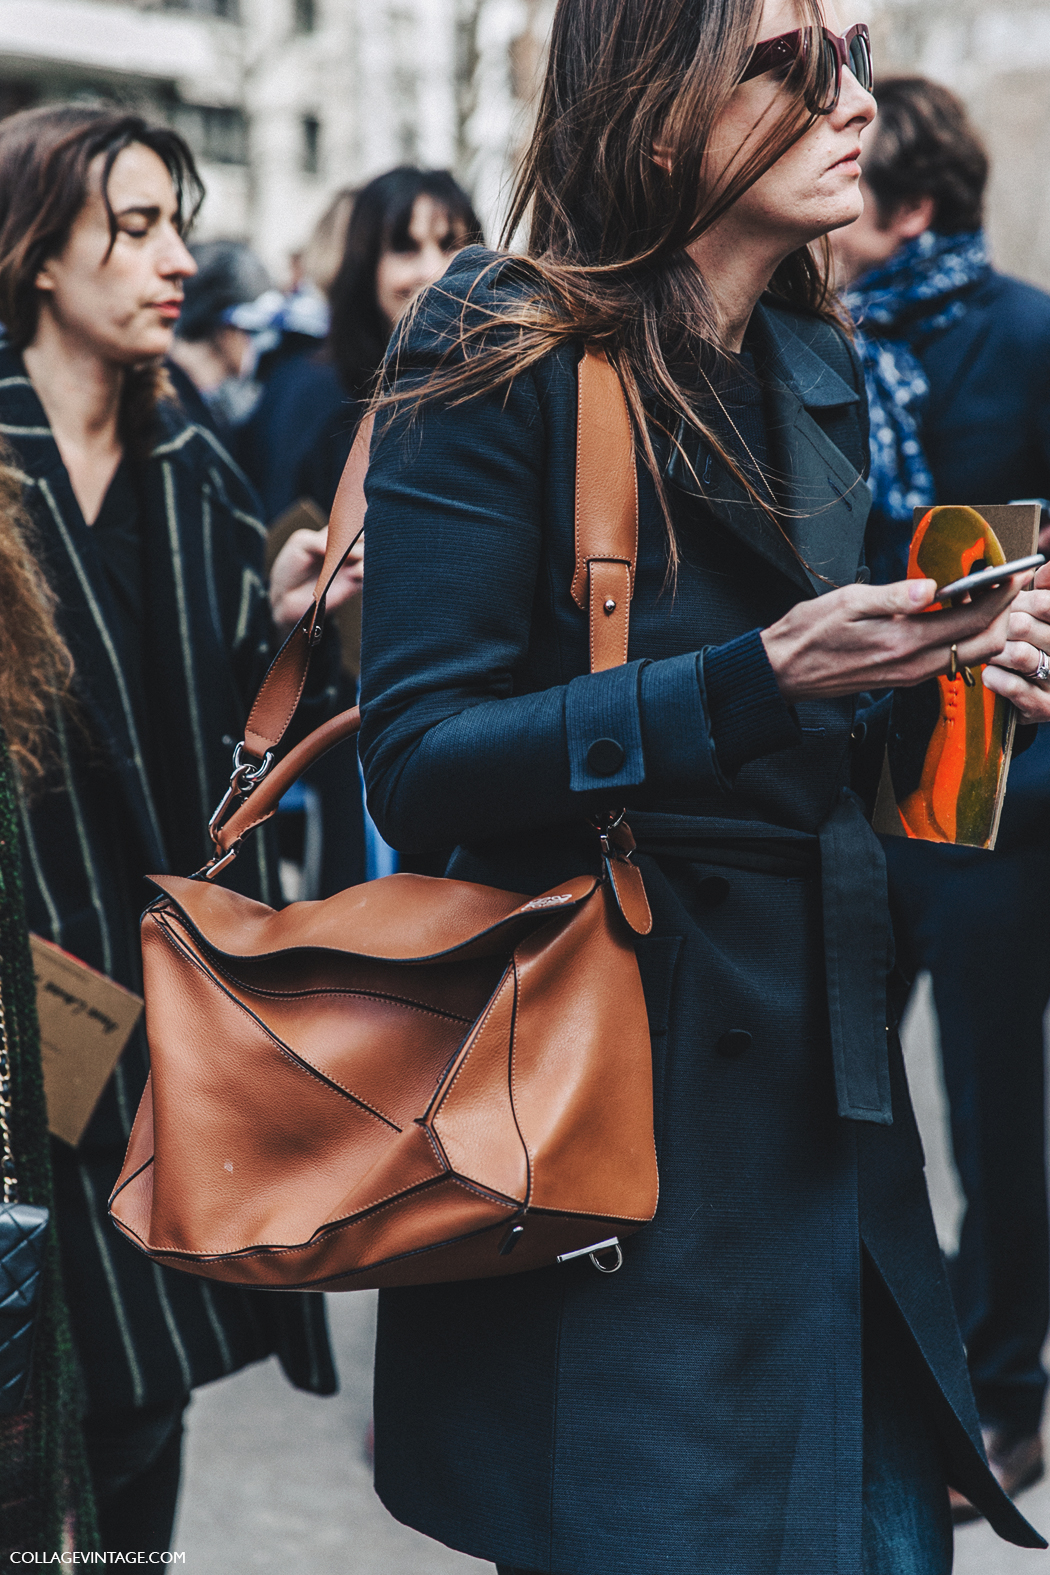 PFW-Paris_Fashion_Week_Fall_2016-Street_Style-Collage_Vintage-Loewe_Puzzle-